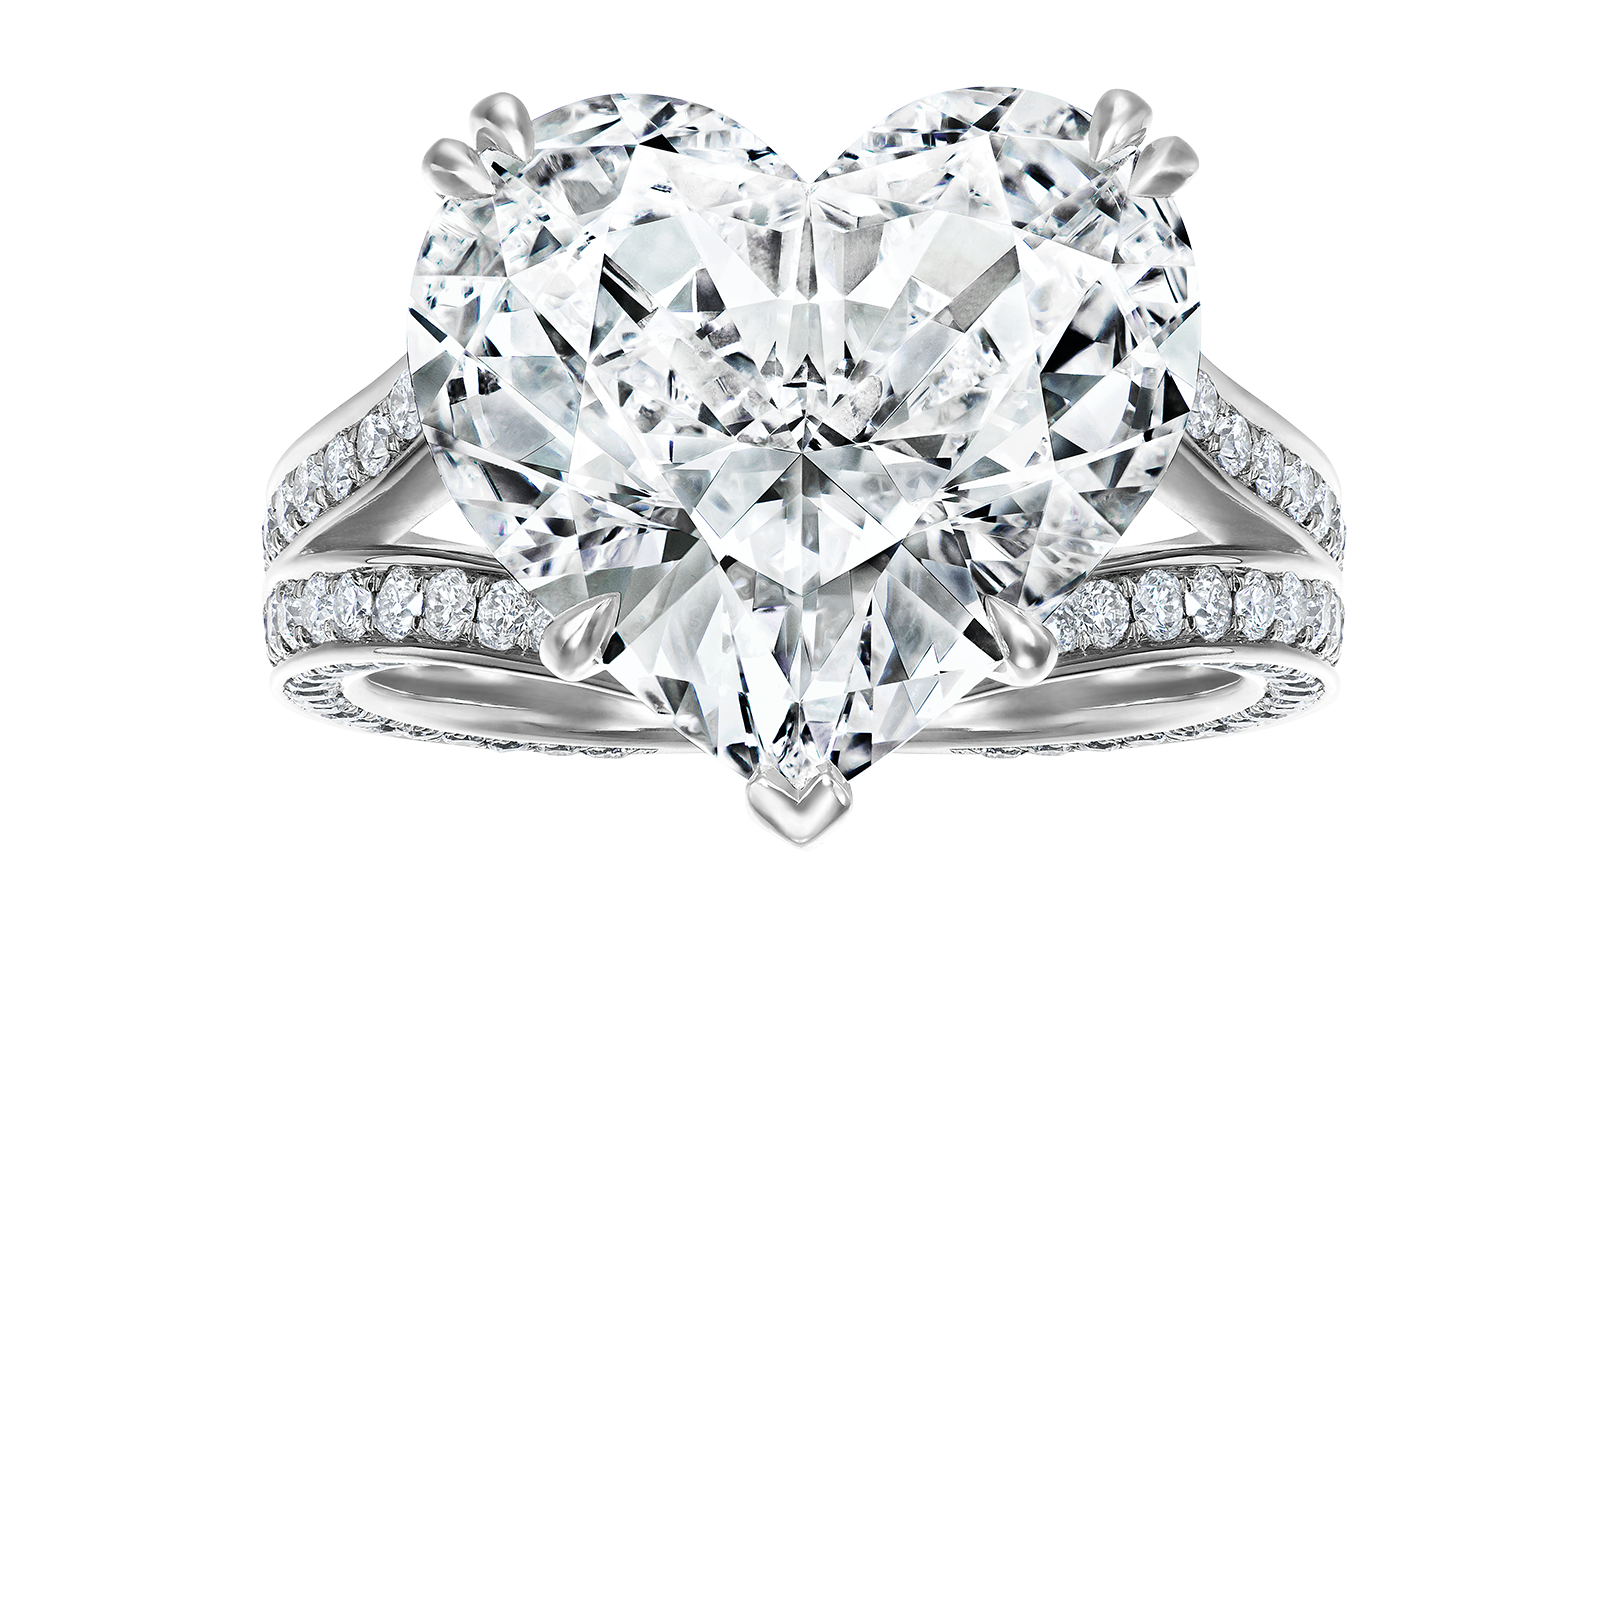 1600x1600 Heart Shaped Diamond Ring